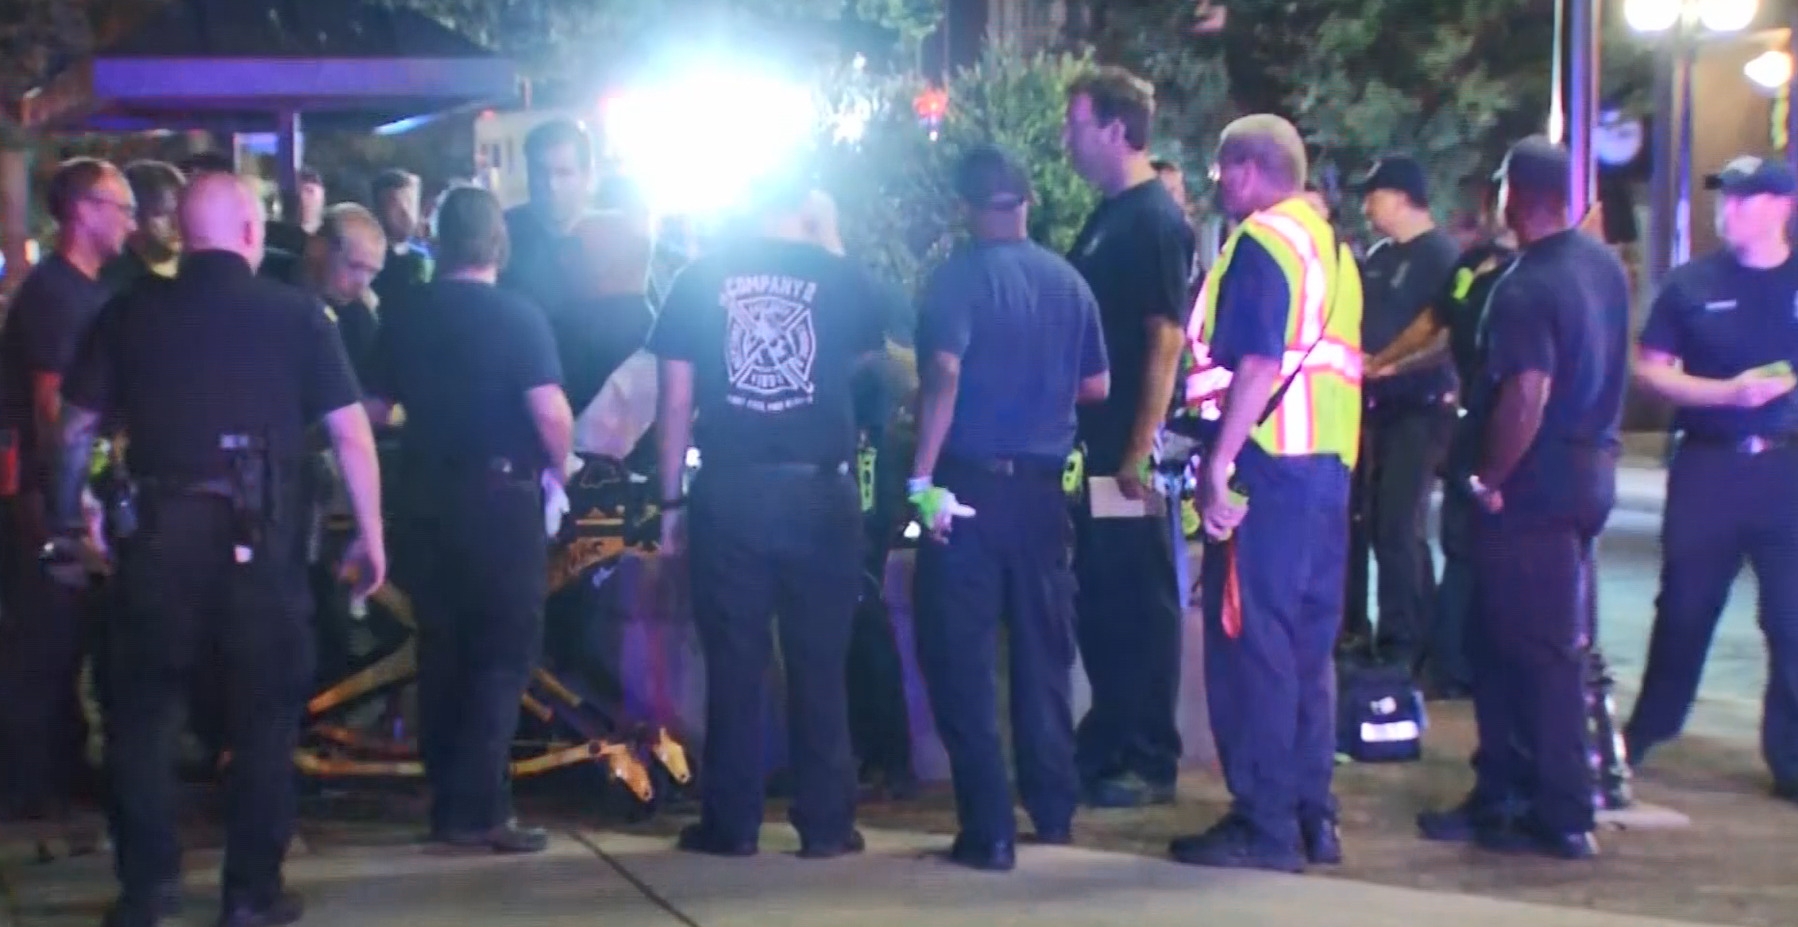 Police: Suspect, 9 others dead, 16 injured in Dayton, OH